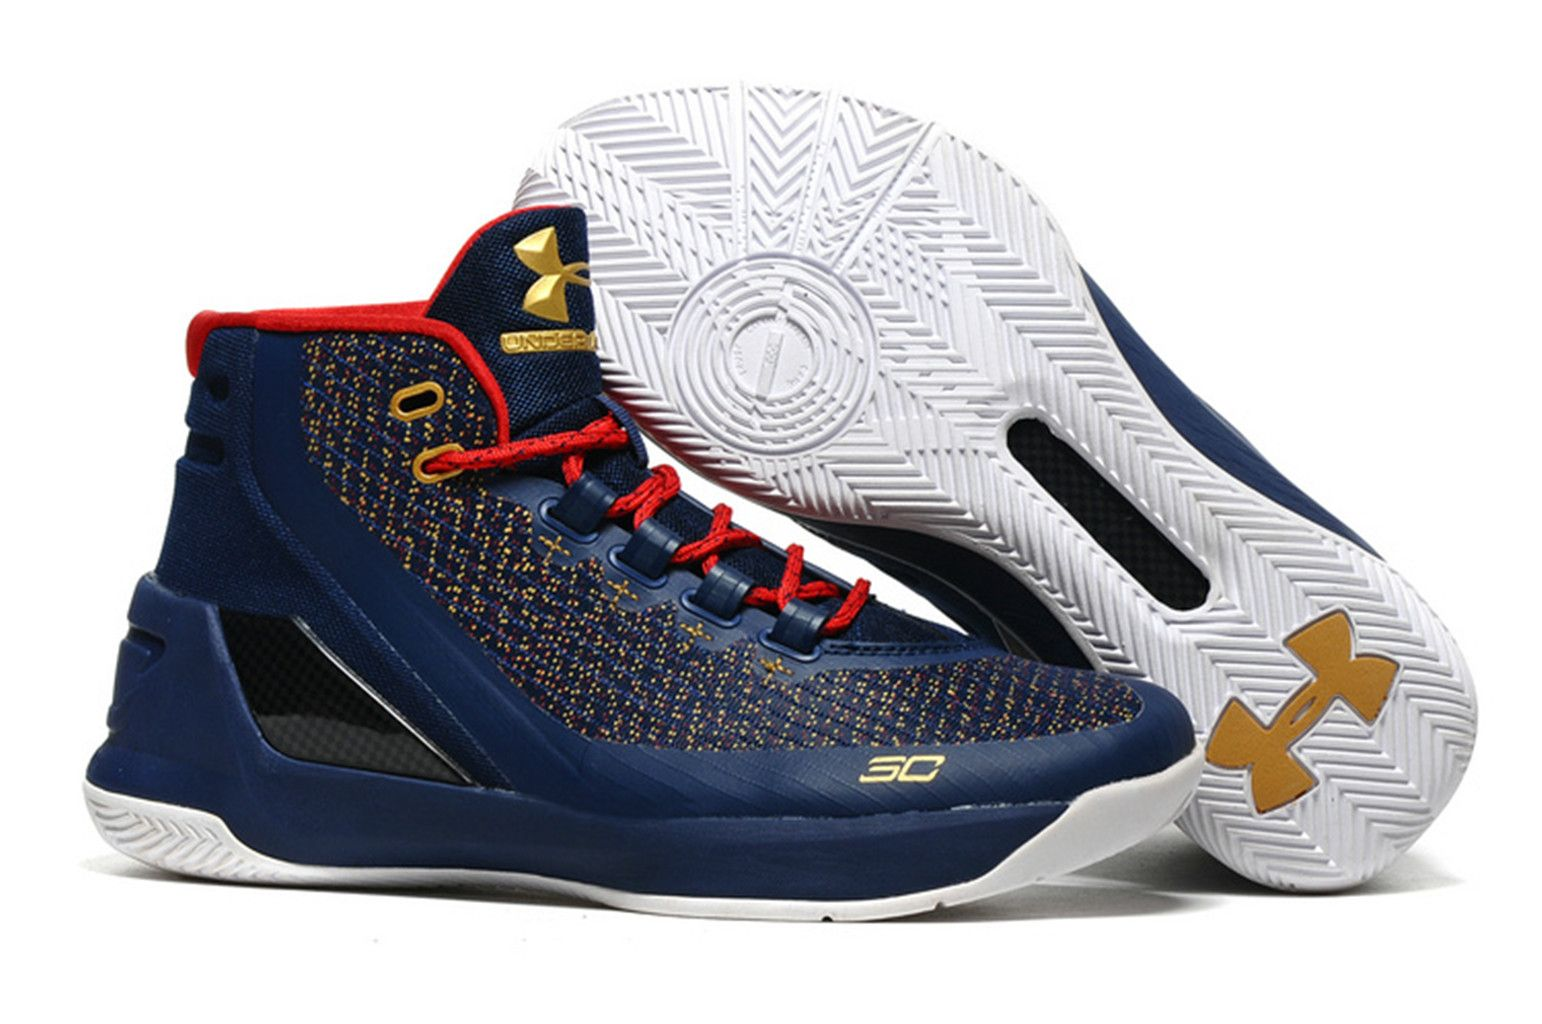 Golden State Warriors Stephen Curry 3 Royal Blue Basketball Shoes on  www.offwhiteonline.com 4b77117f065